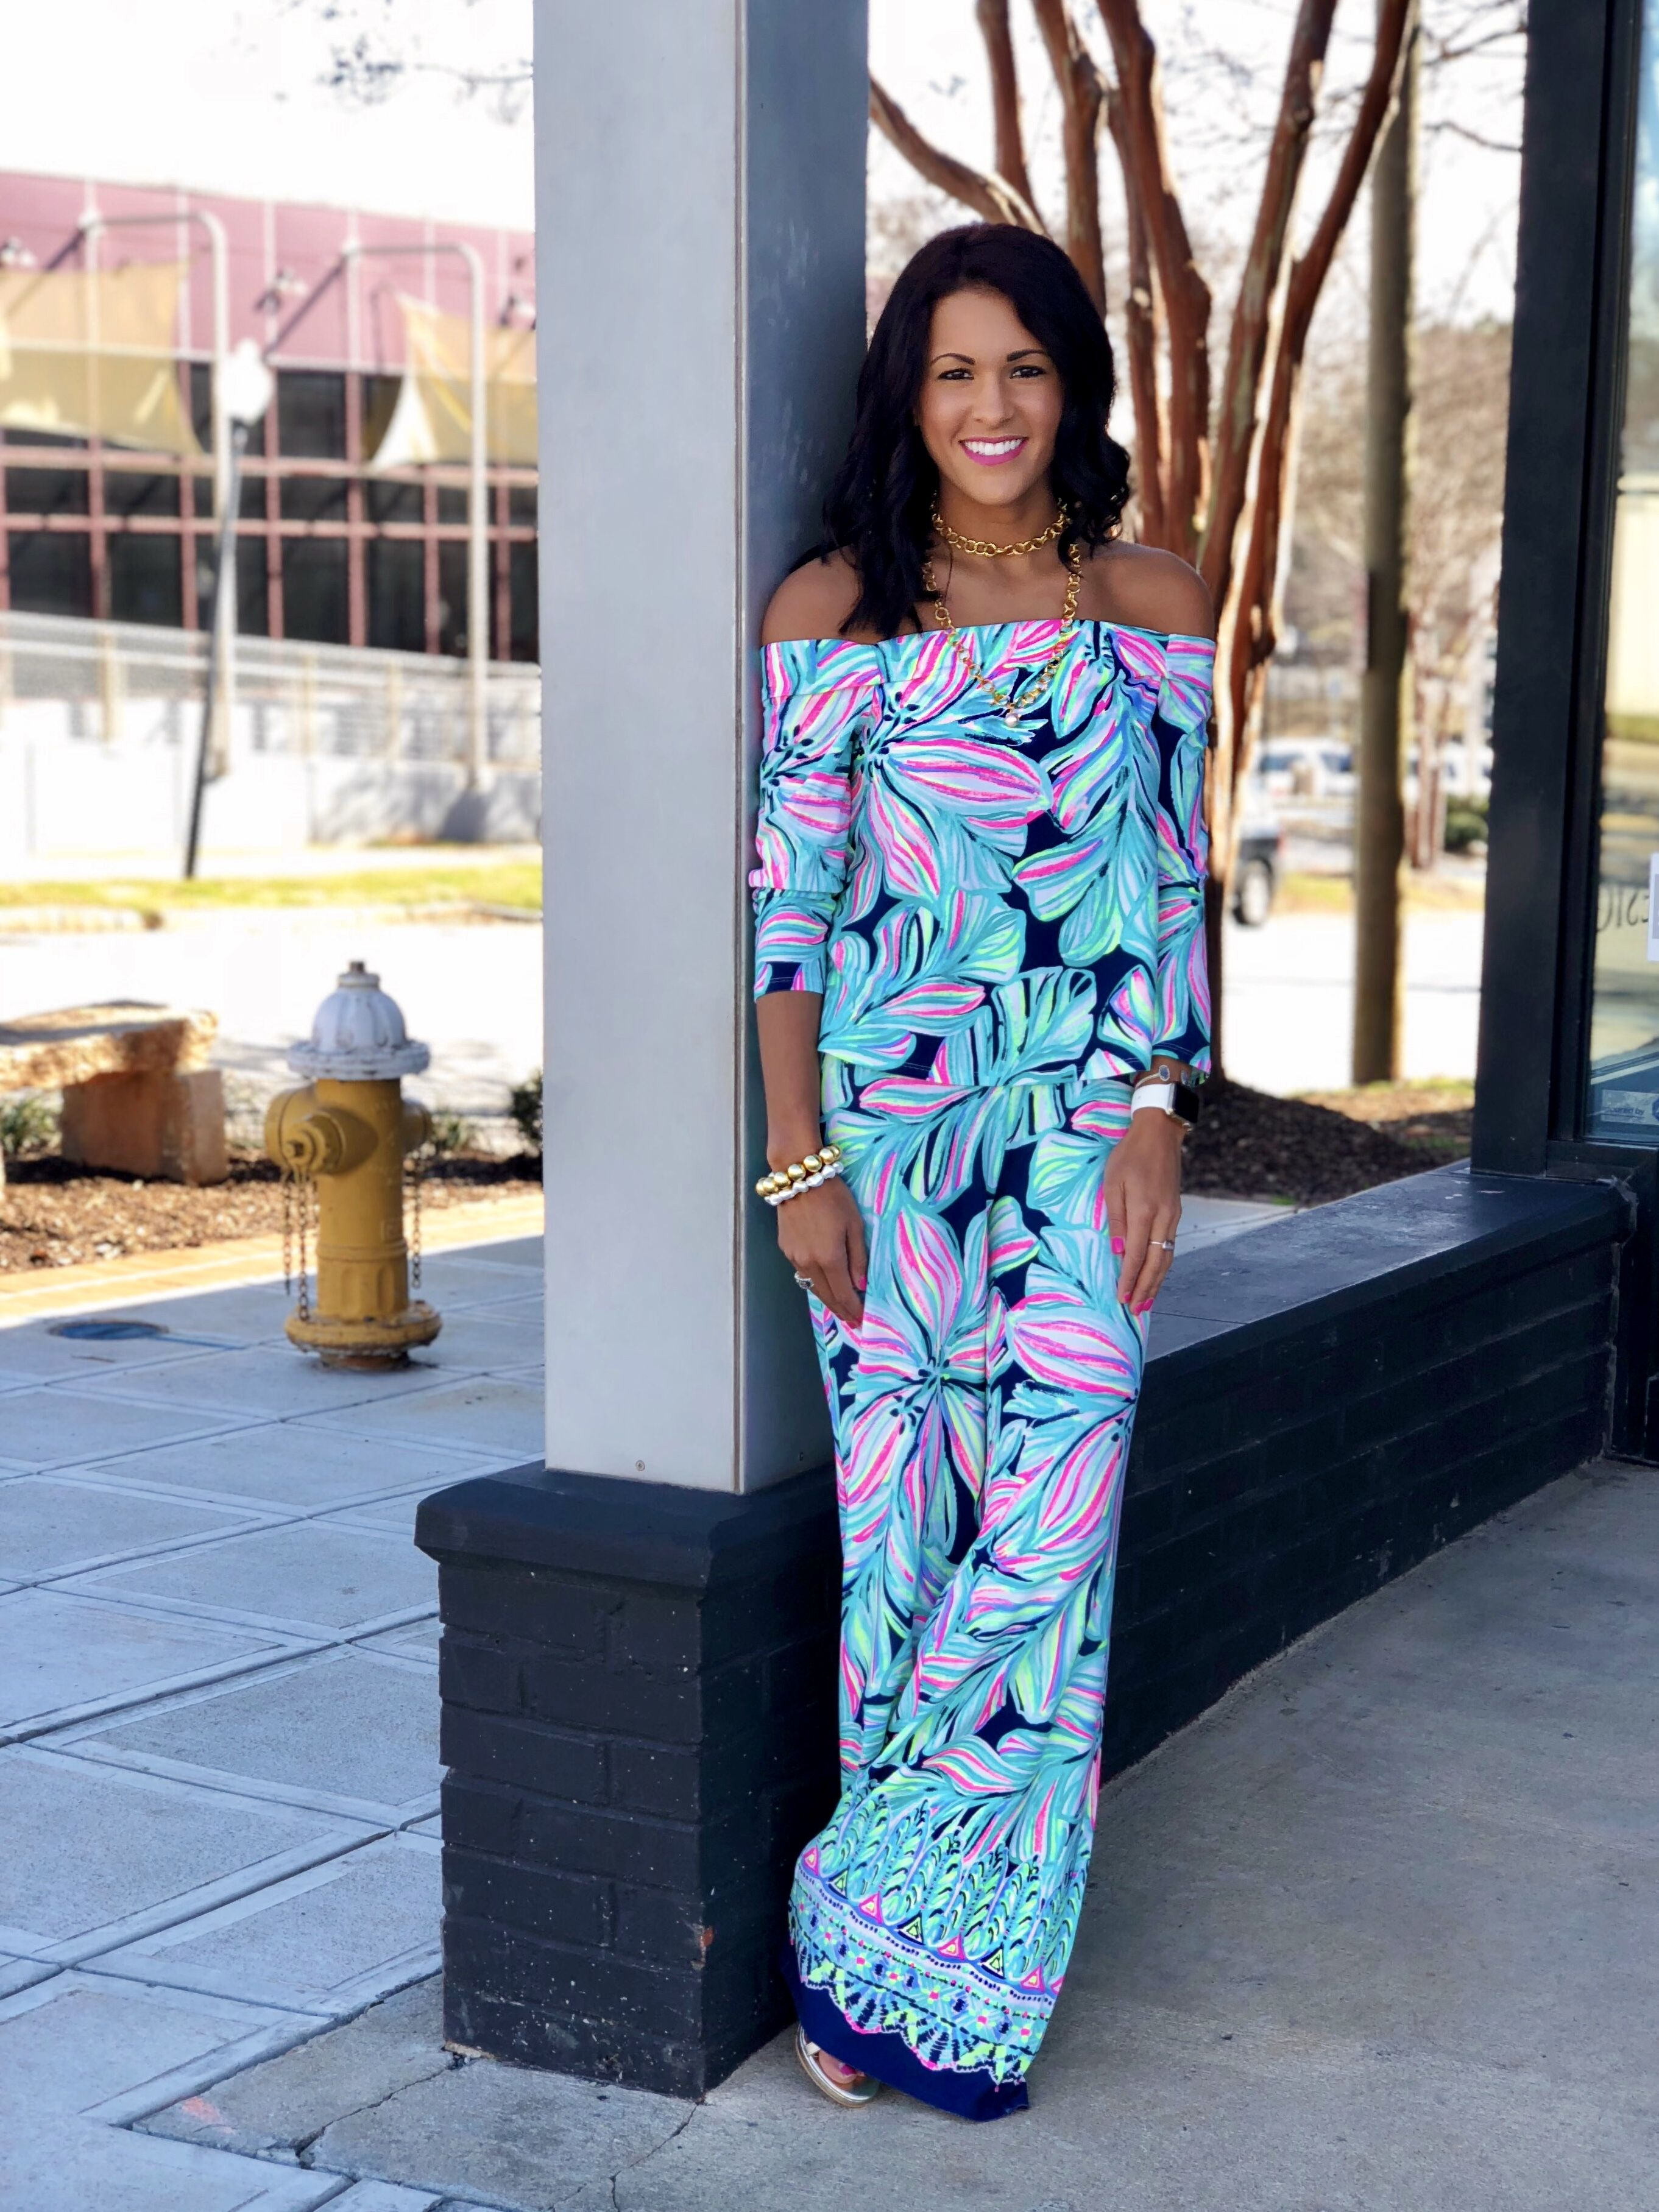 d633c983f4132f Lilly Pulitzer Spring 2018 Weslee Set High Tide Dancing Lady USC Upstate  Campus Rep Pink Bee on Campus